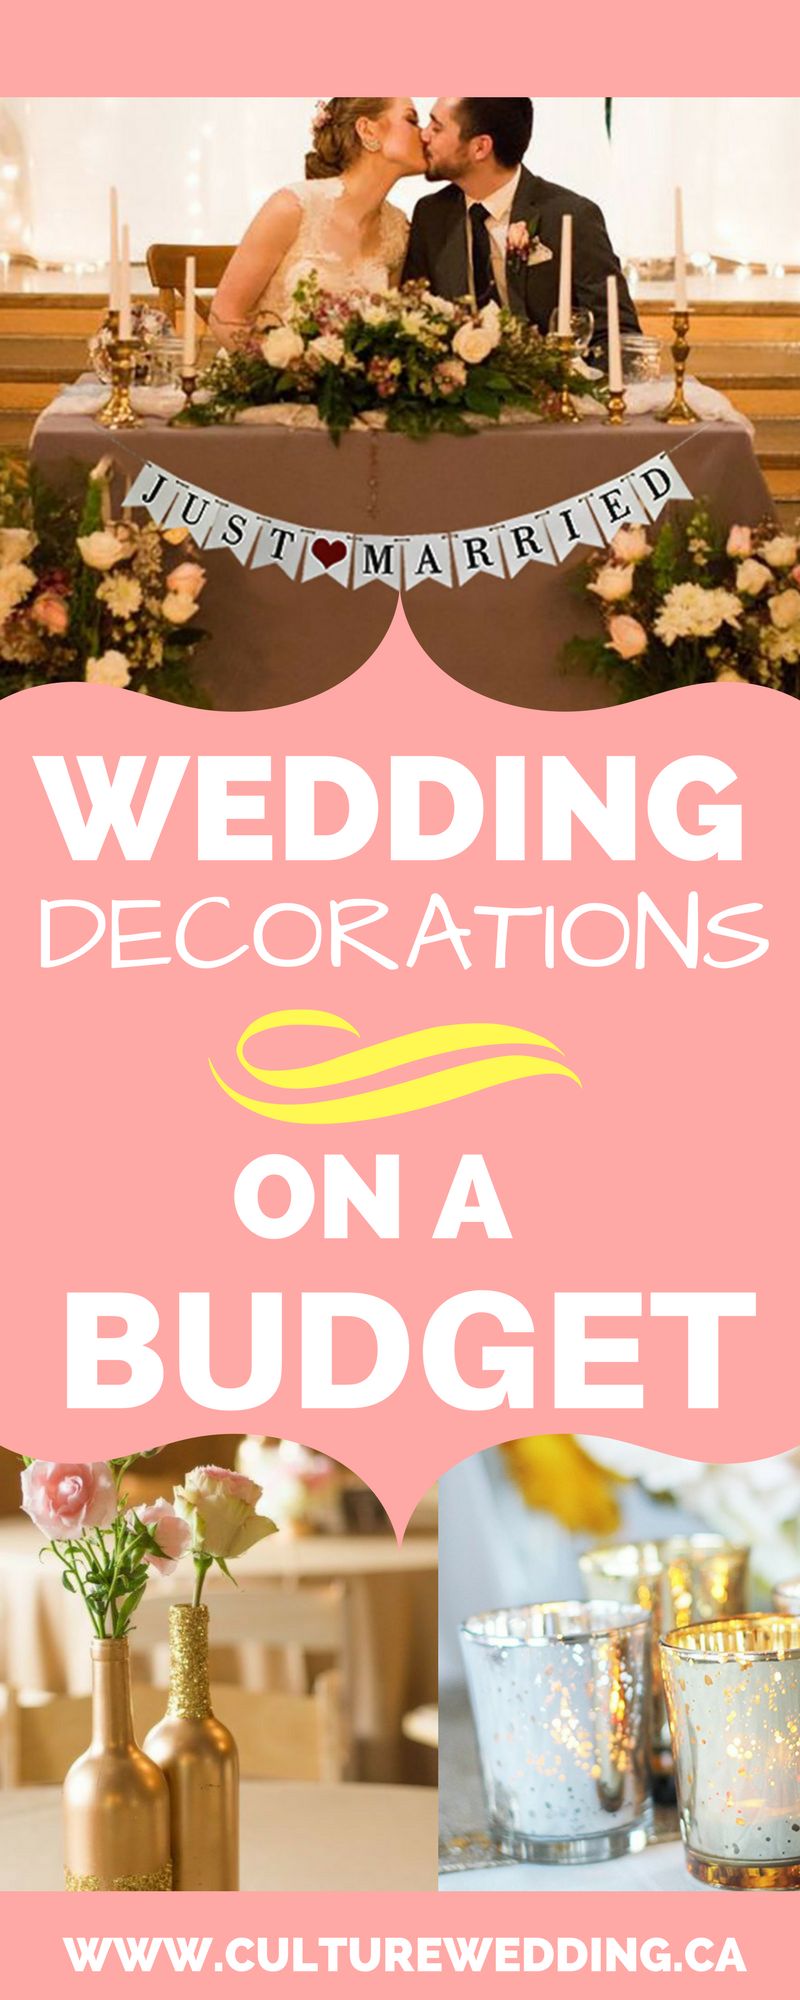 How to get wedding decorations on a budget - Get them now | Group ...